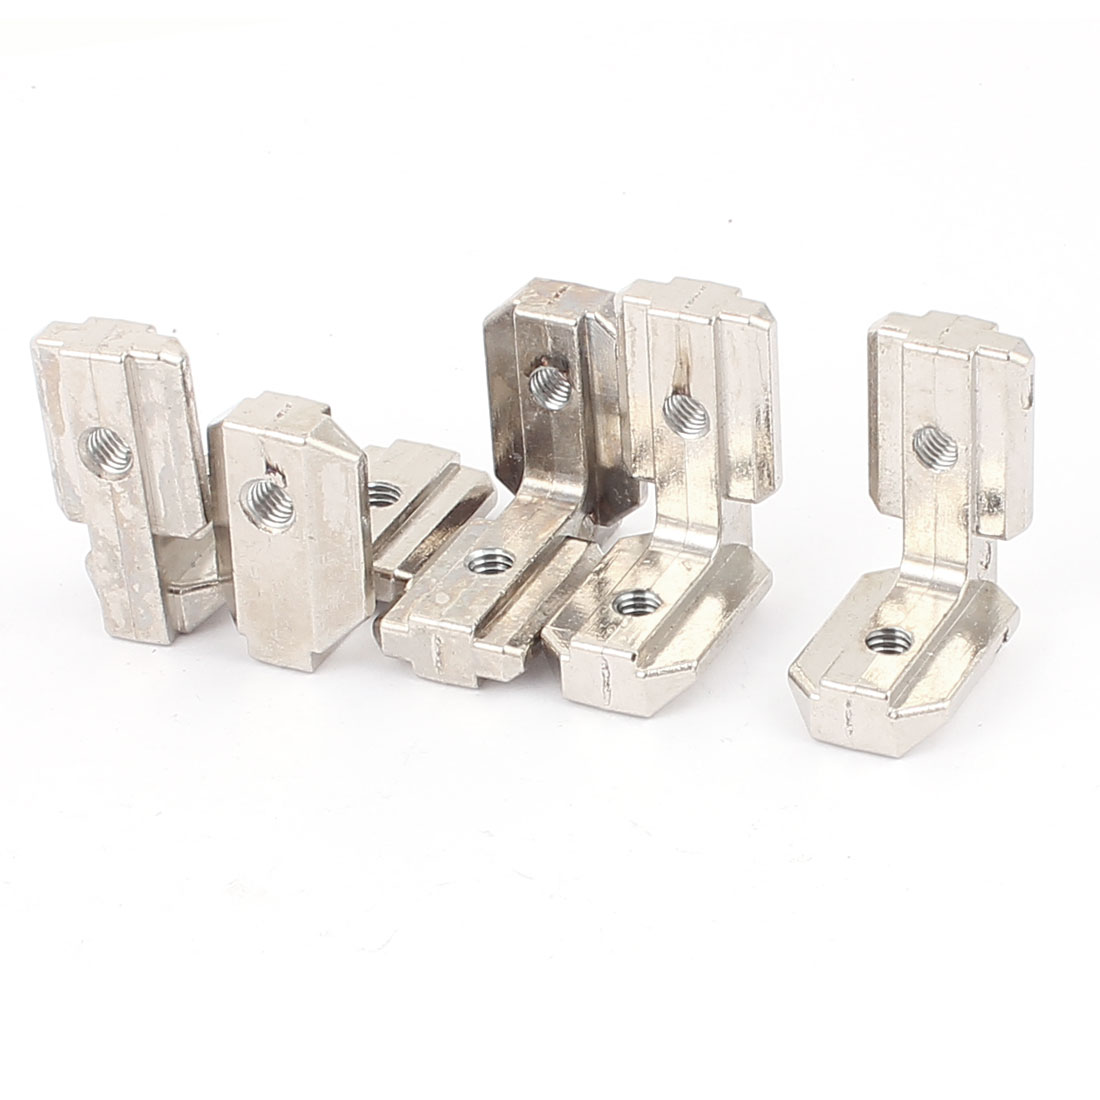 T Slot L Shape 90 Degree Inside Corner Connector Bracket Silver Tone 5pcs